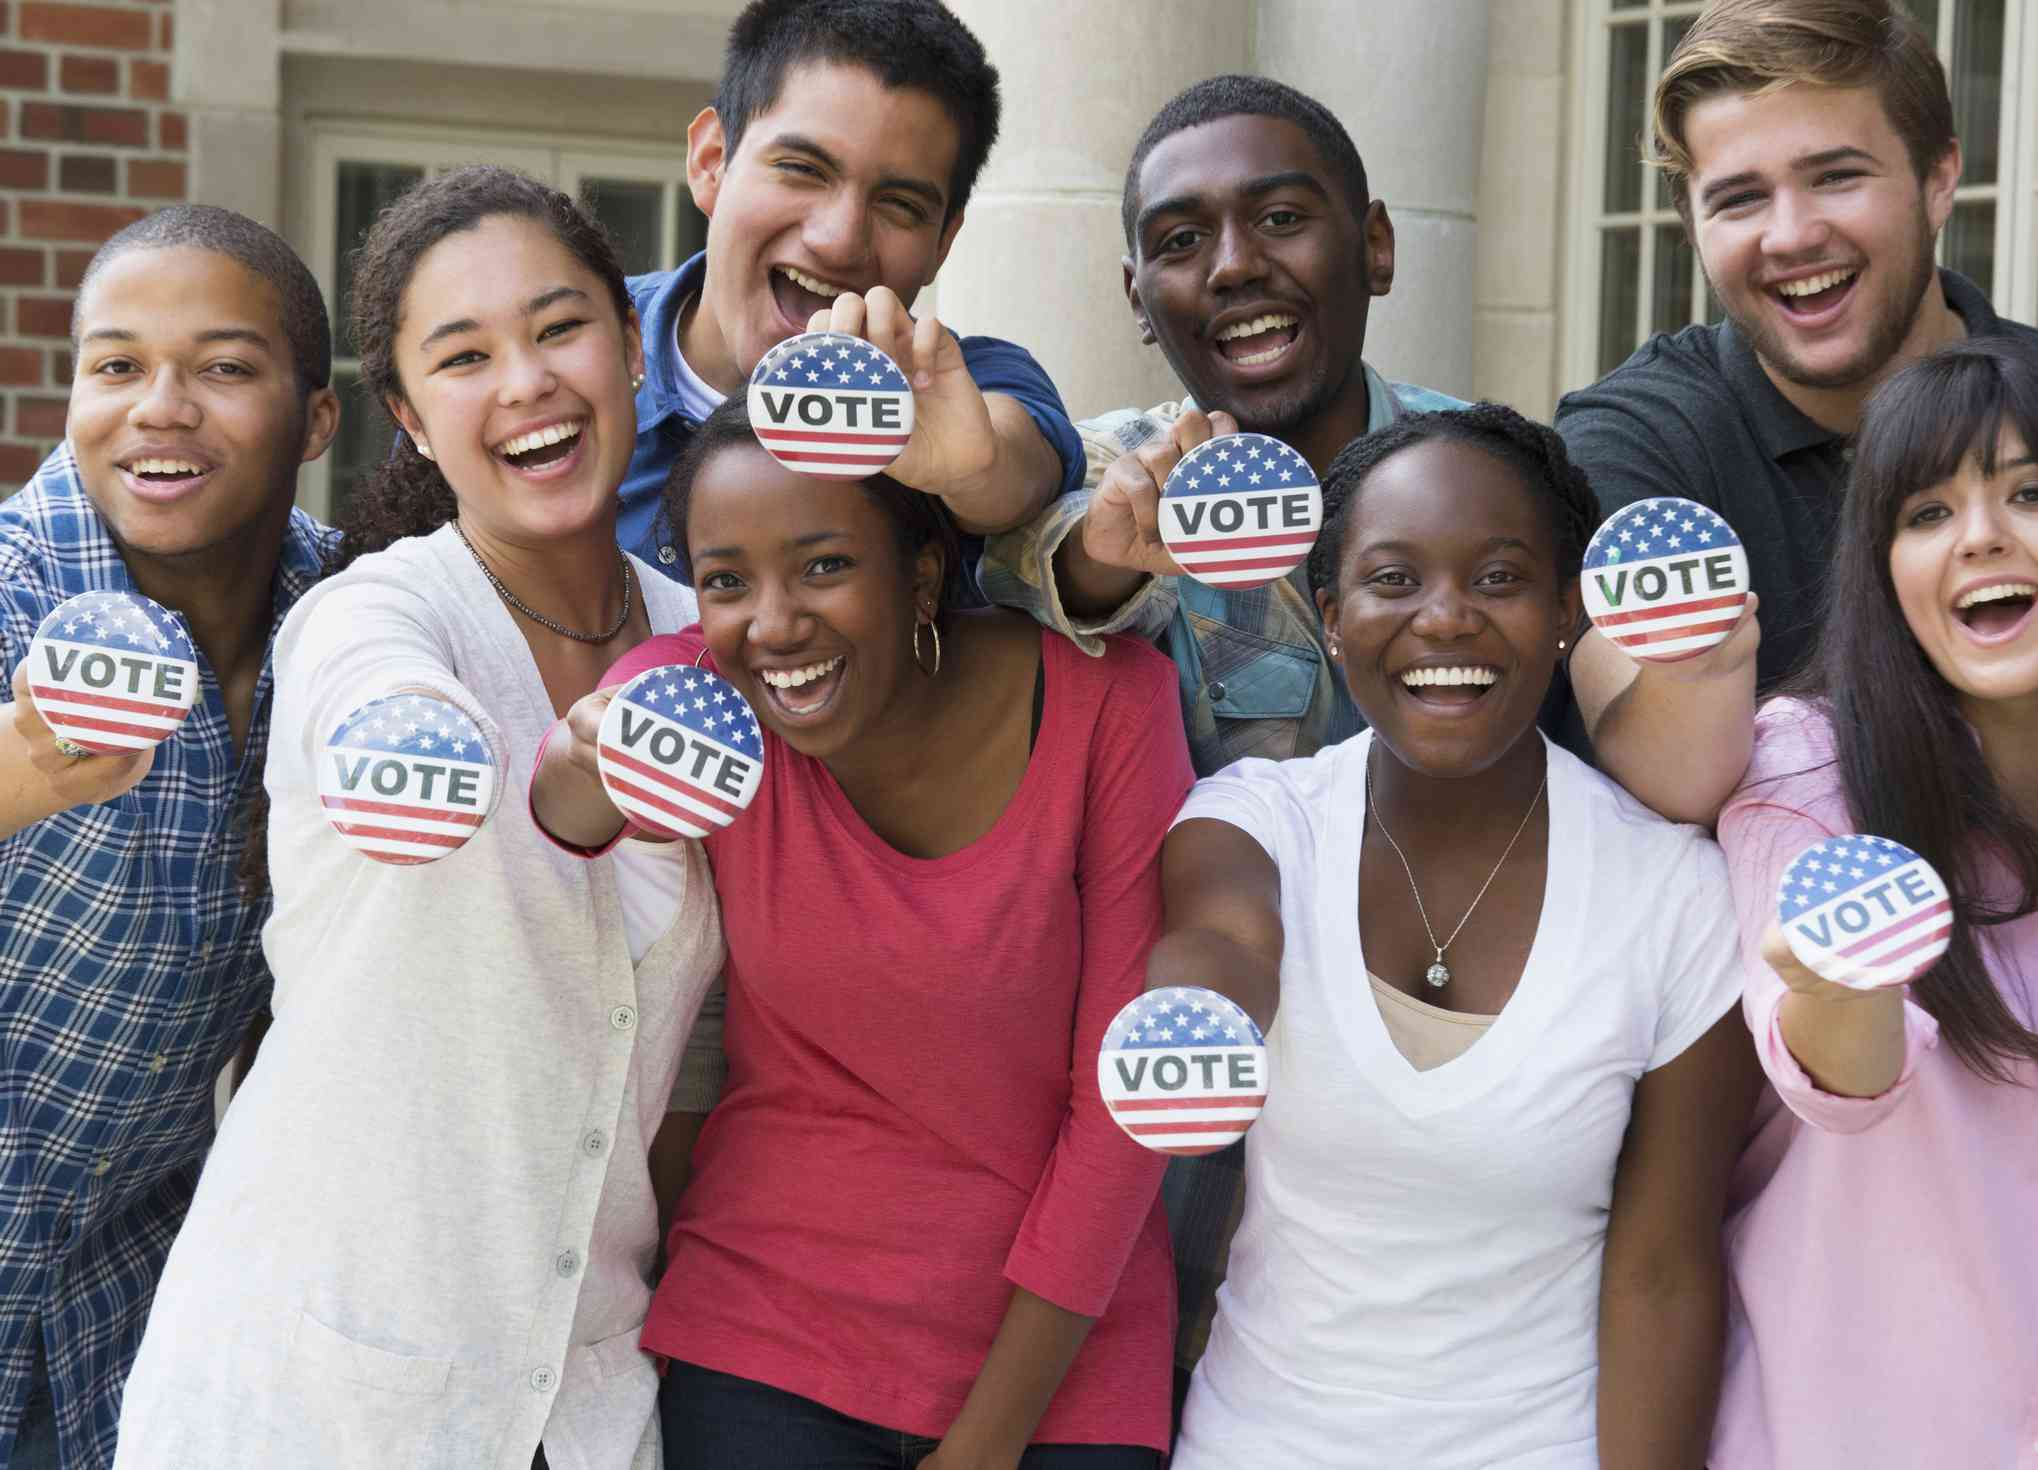 Students holding buttons at voter registration drive.